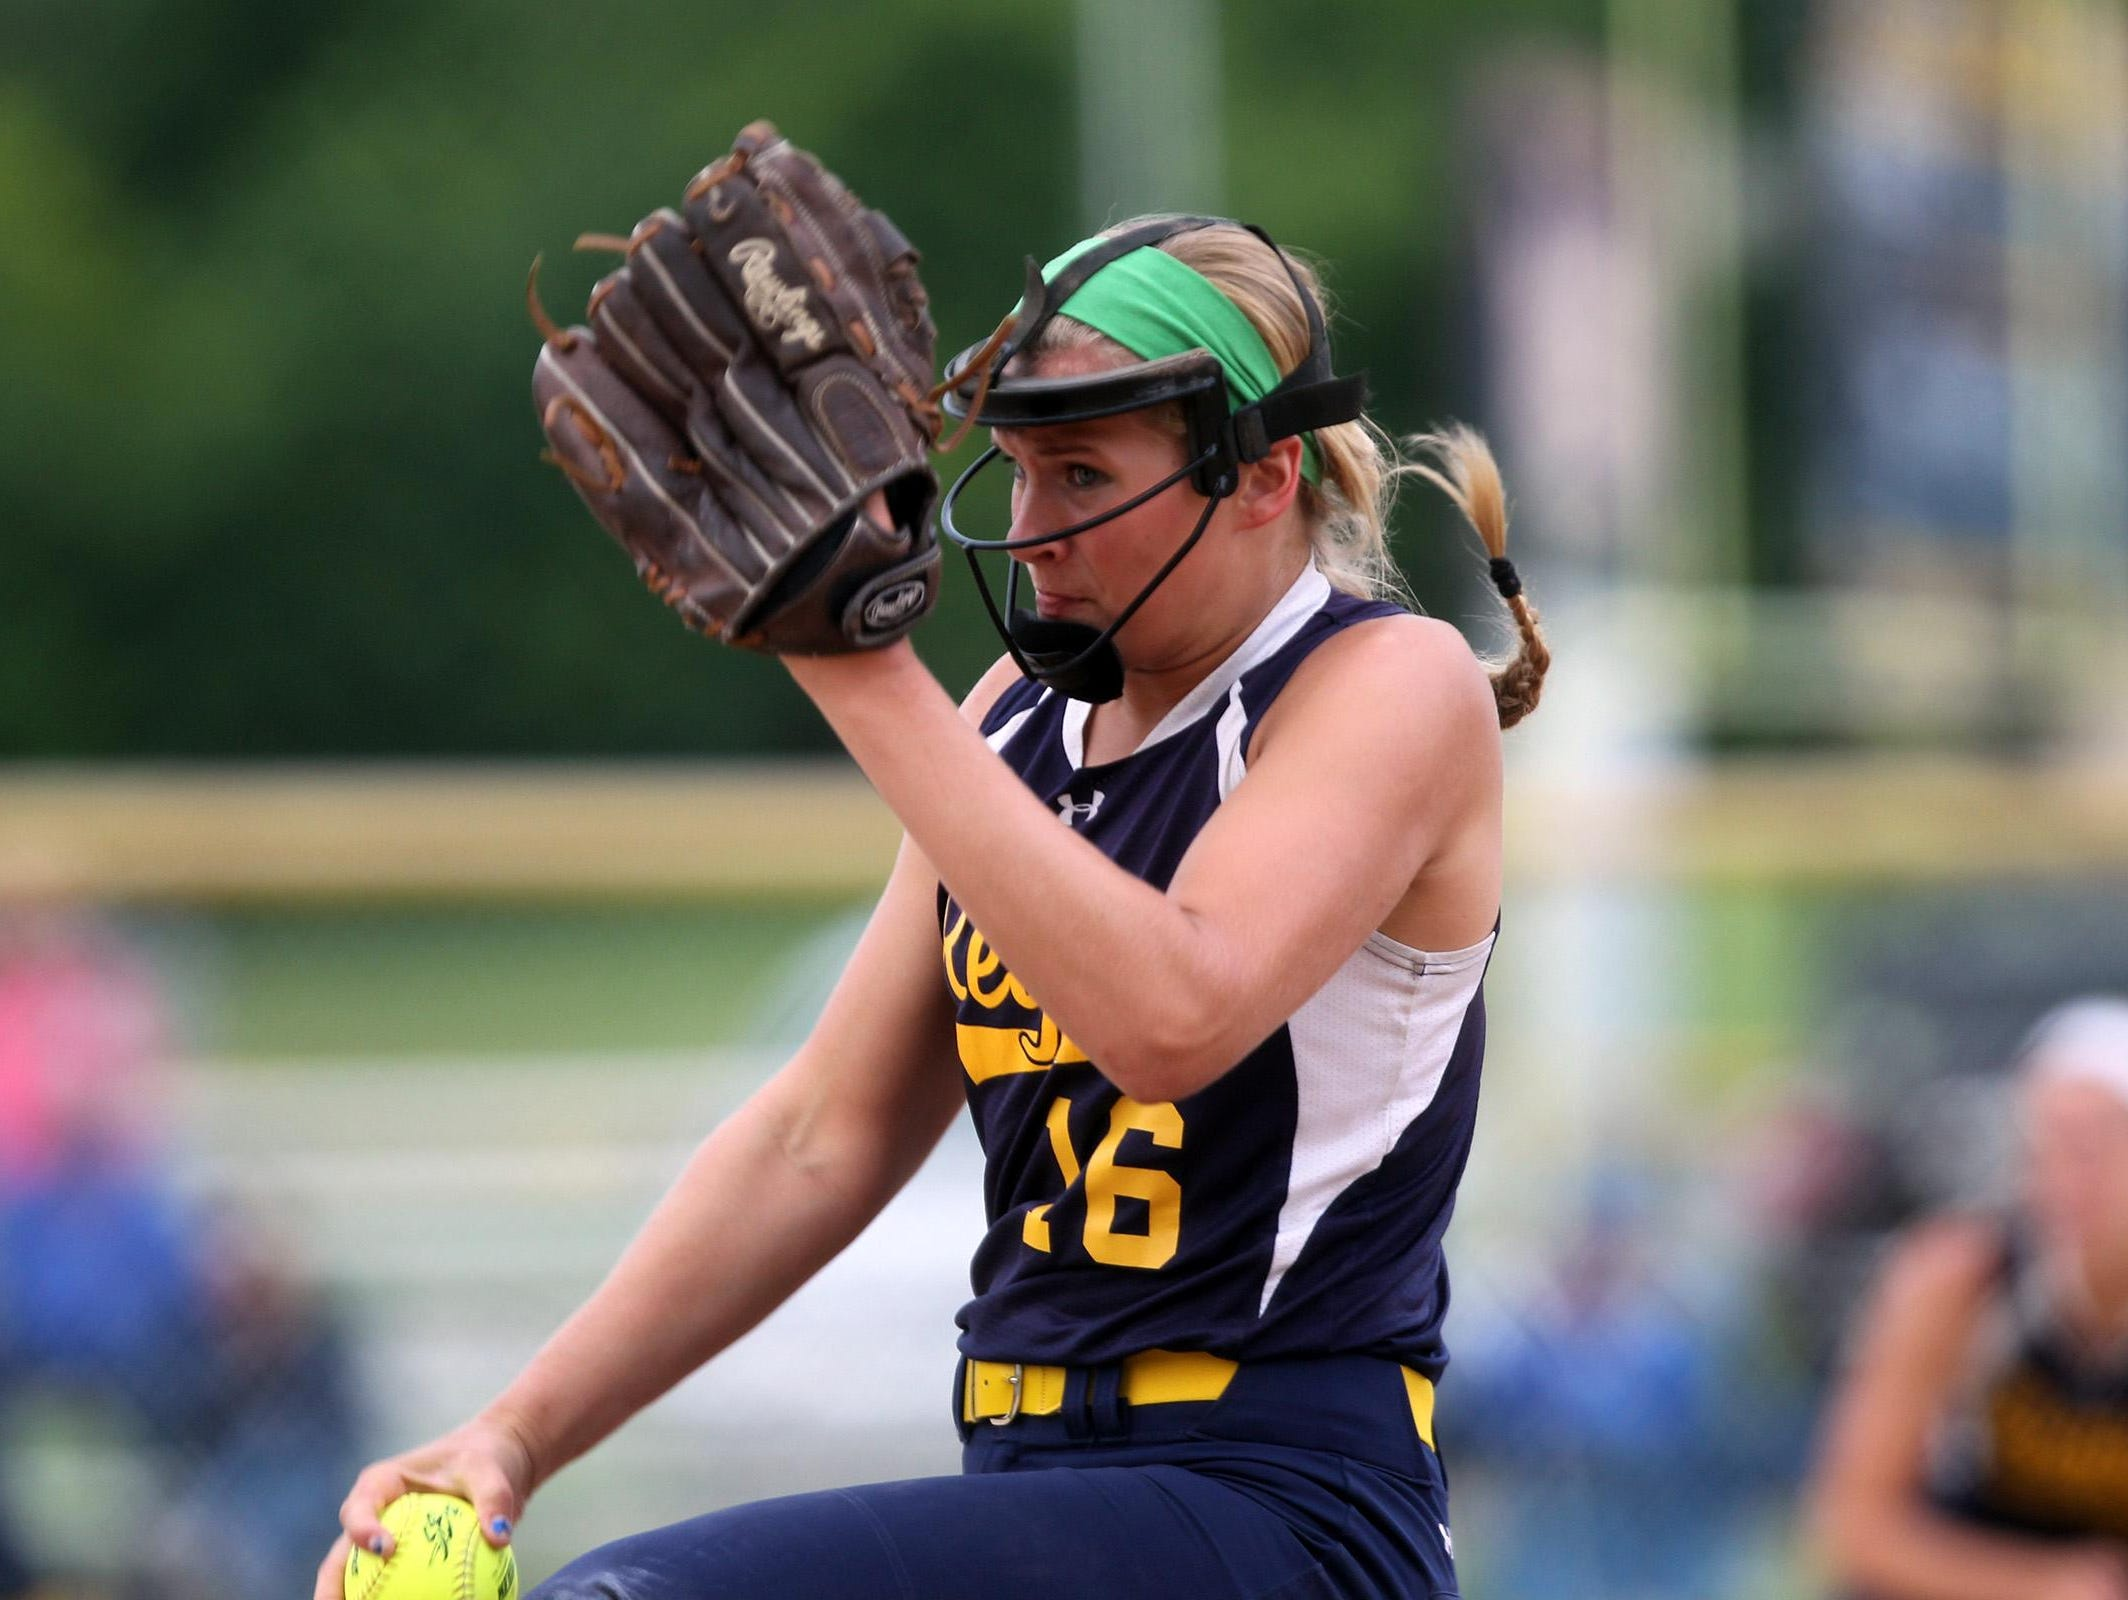 Regina's Sarah Lehman delivers a pitch during the Regals' game against Columbus on Wednesday, July 8, 2015.